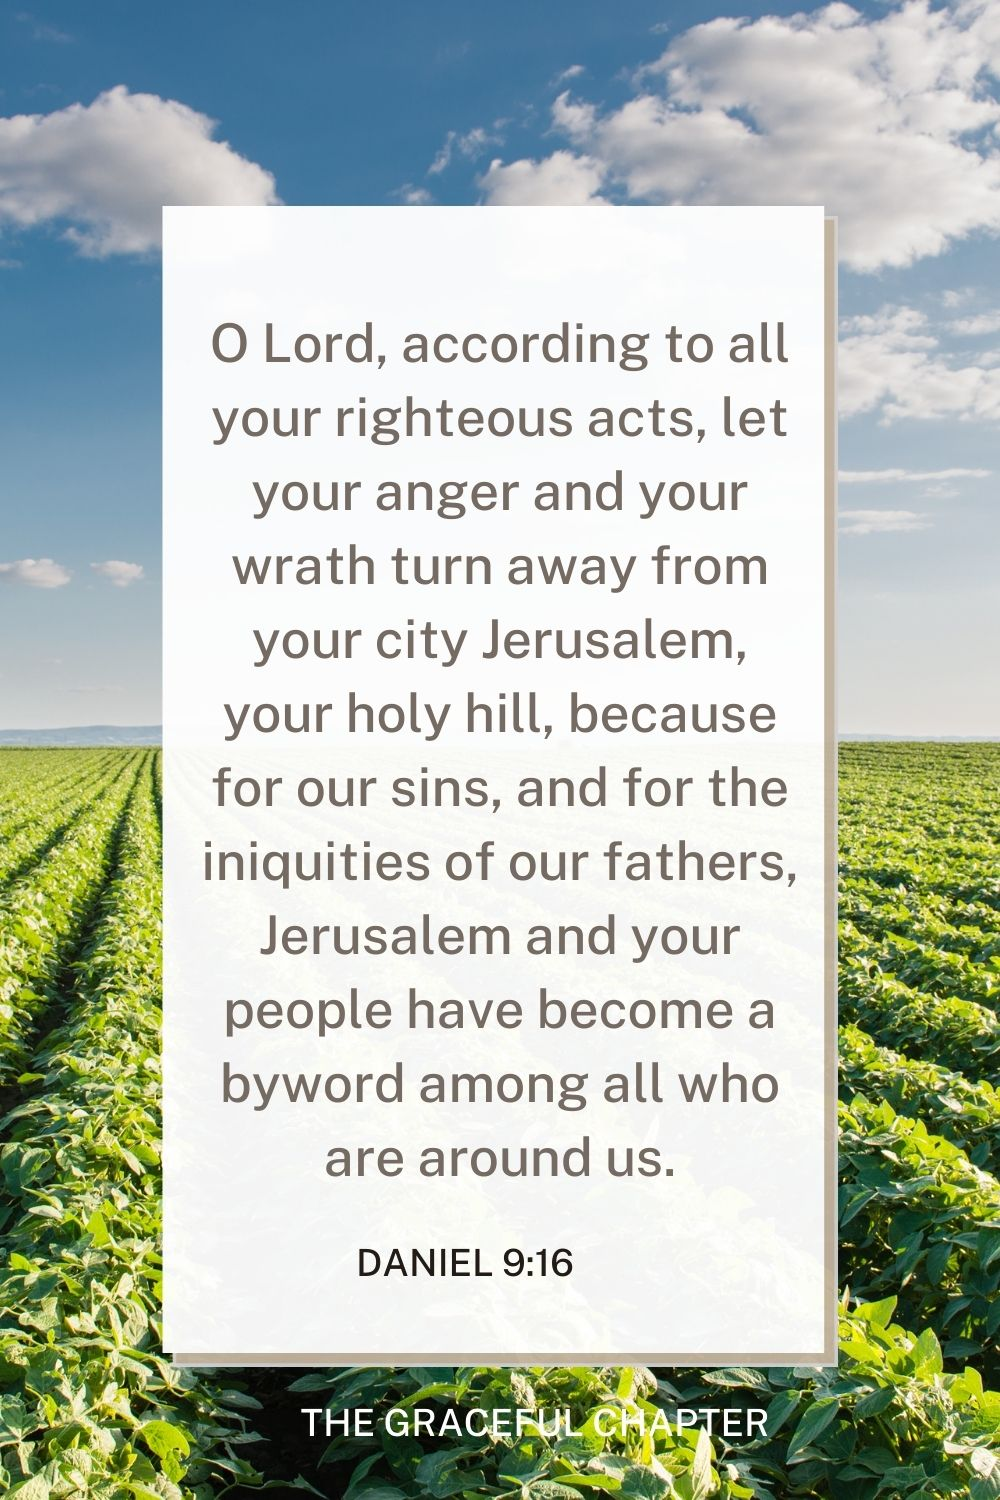 O Lord, according to all your righteous acts, let your anger and your wrath turn away from your city Jerusalem, your holy hill, because for our sins, and for the iniquities of our fathers, Jerusalem and your people have become a byword among all who are around us. Daniel 9:16